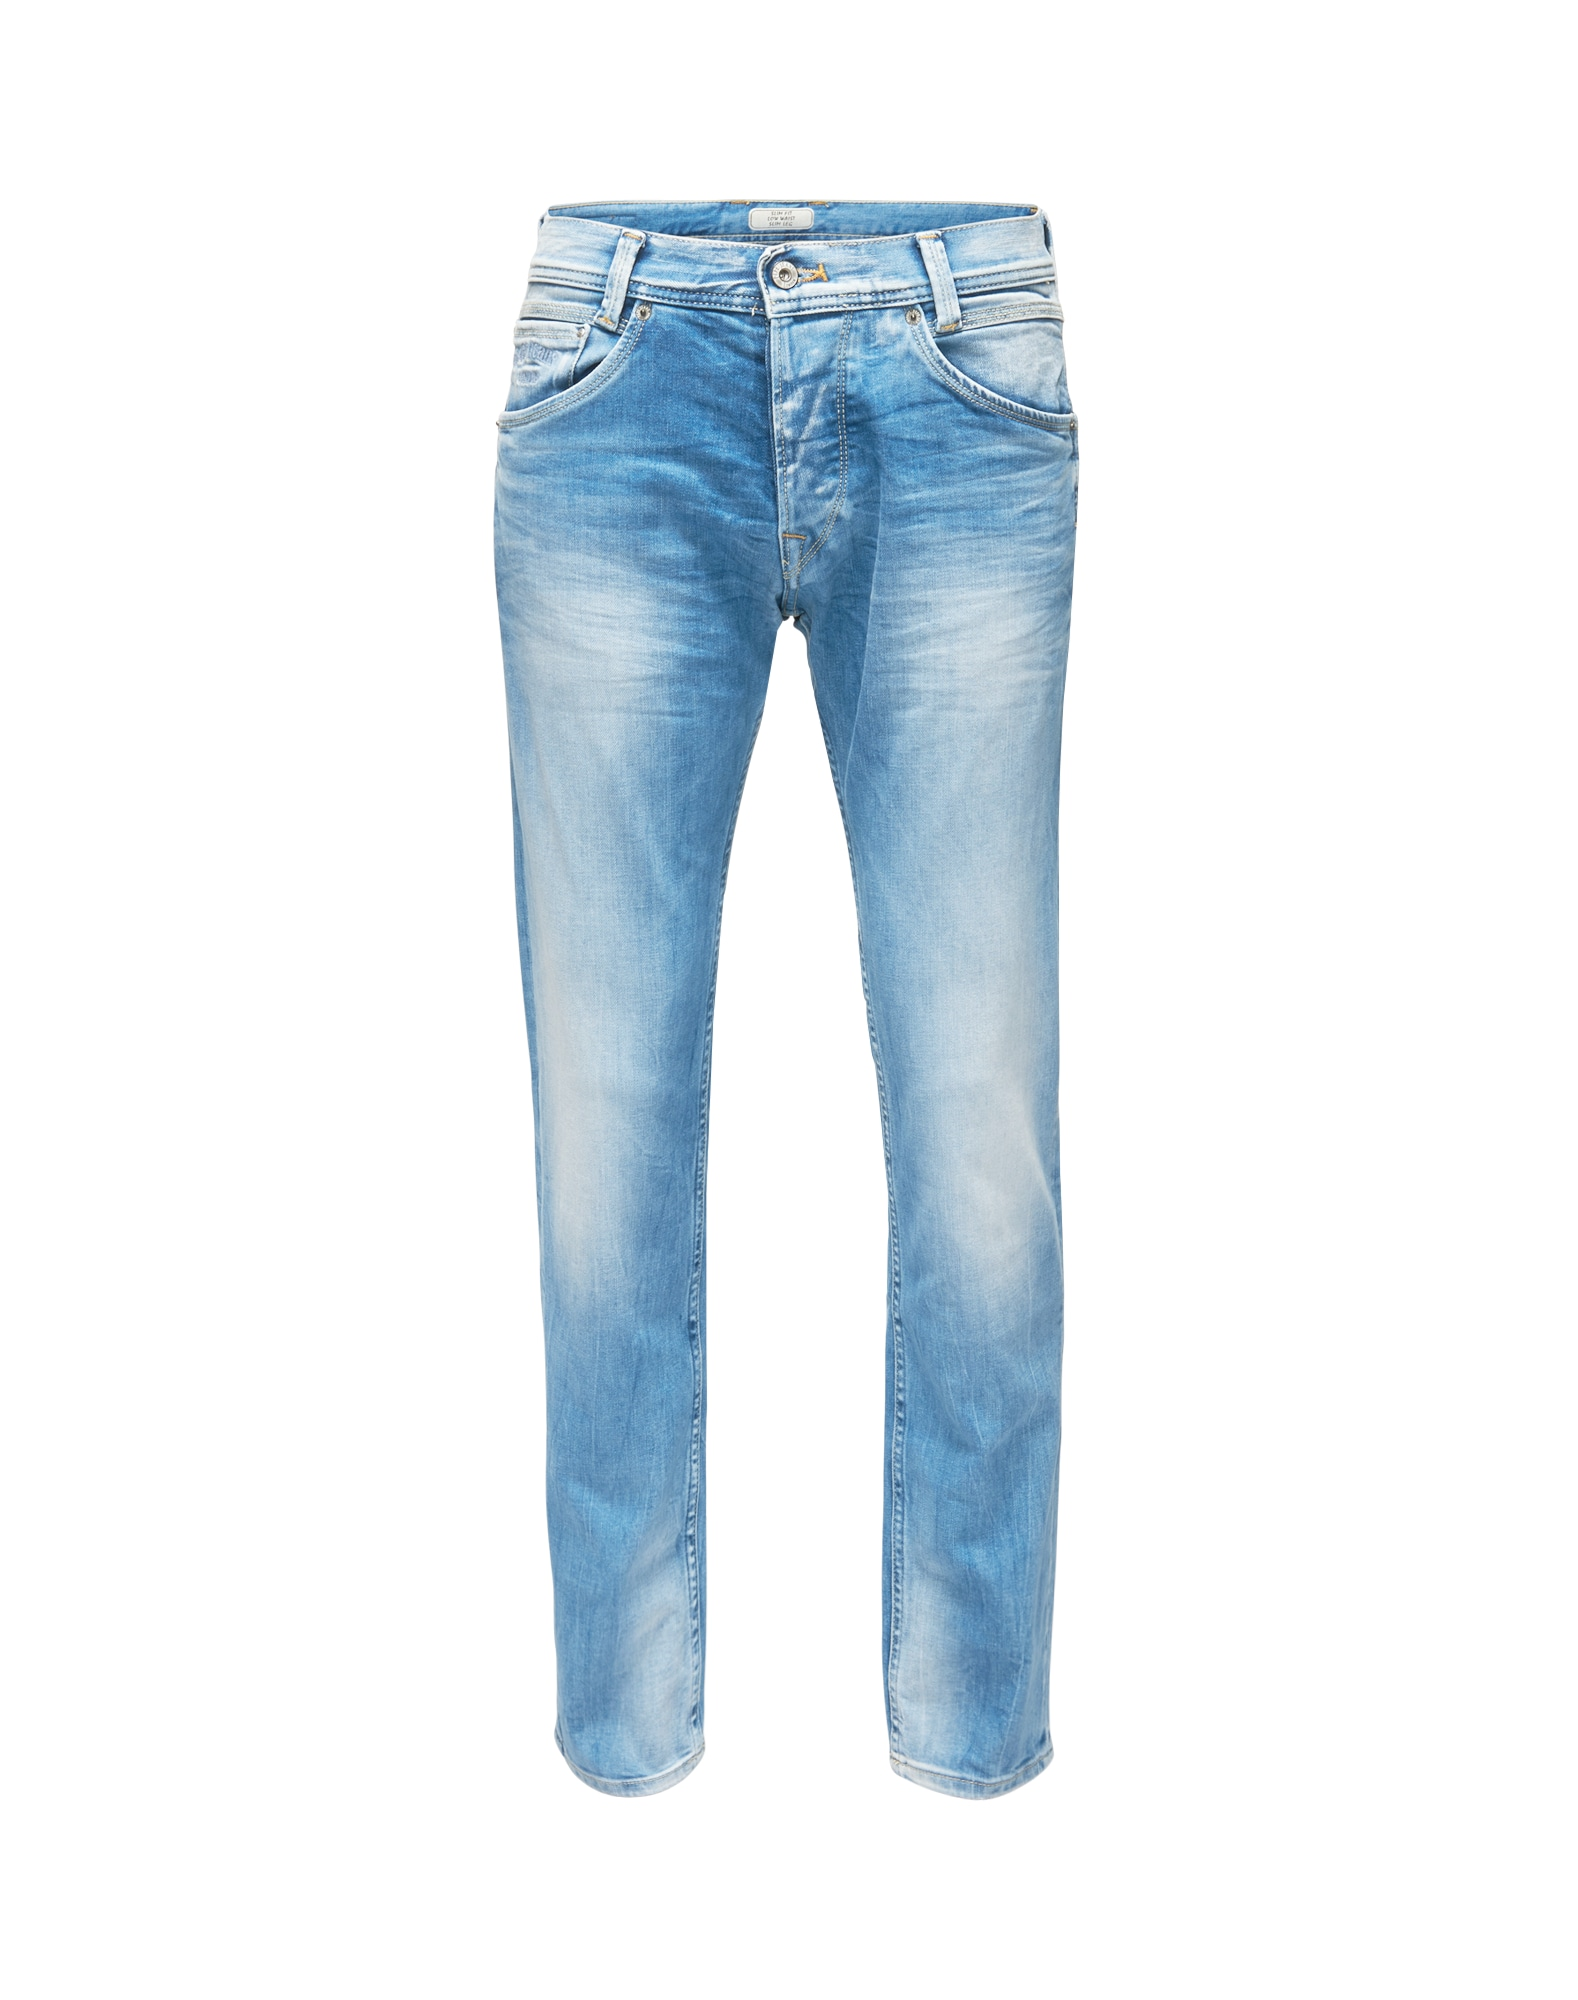 Pepe Jeans Heren Jeans Spike lichtblauw